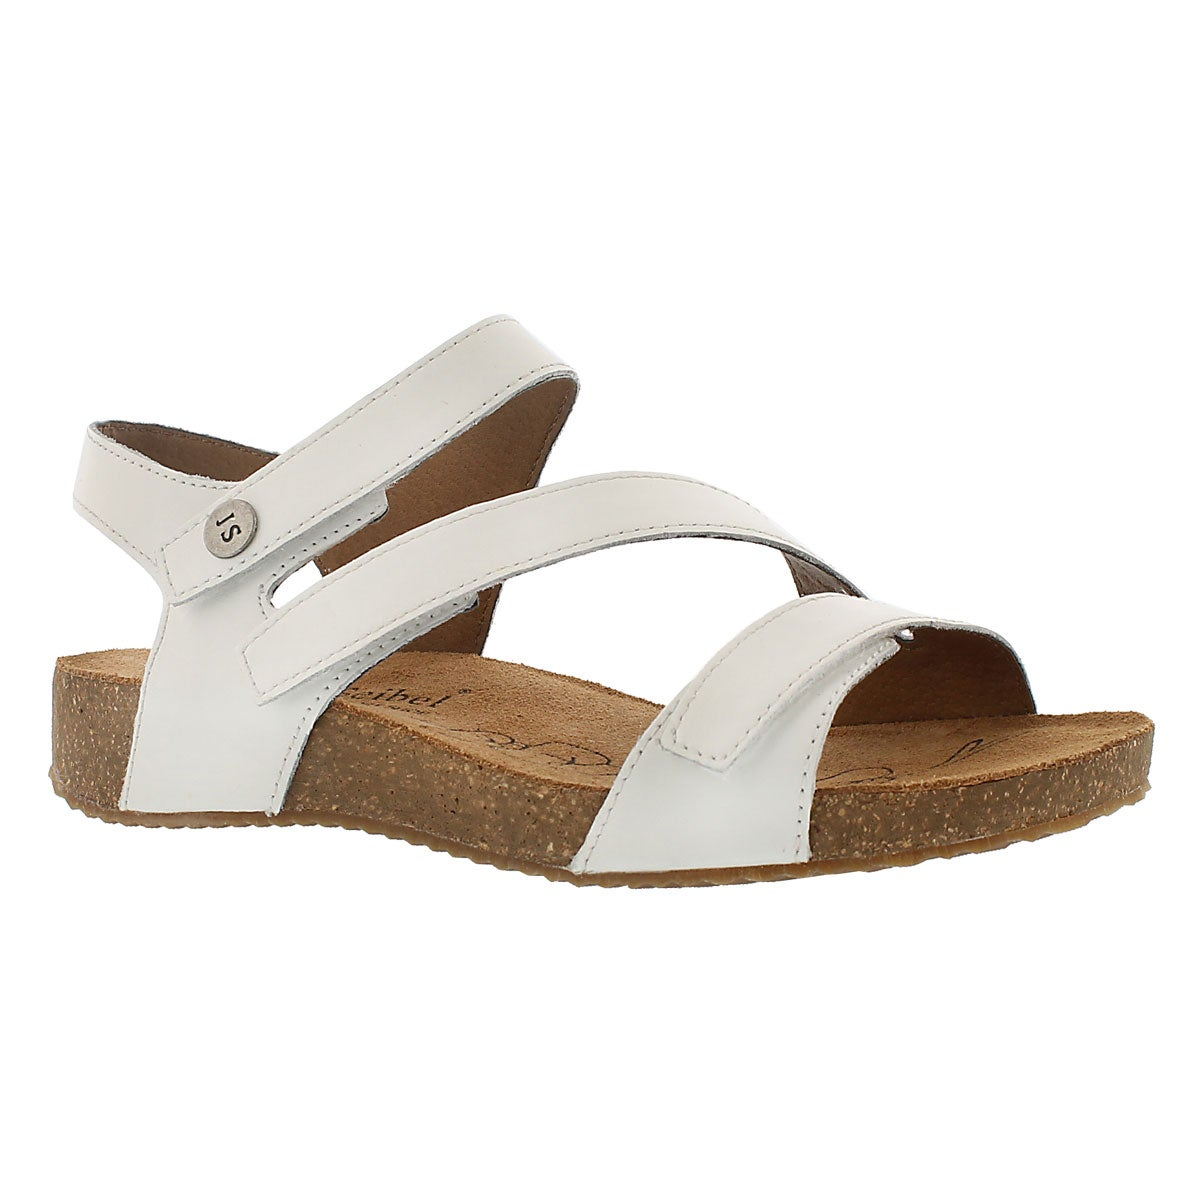 Women's TONGA 25 white casual sandals